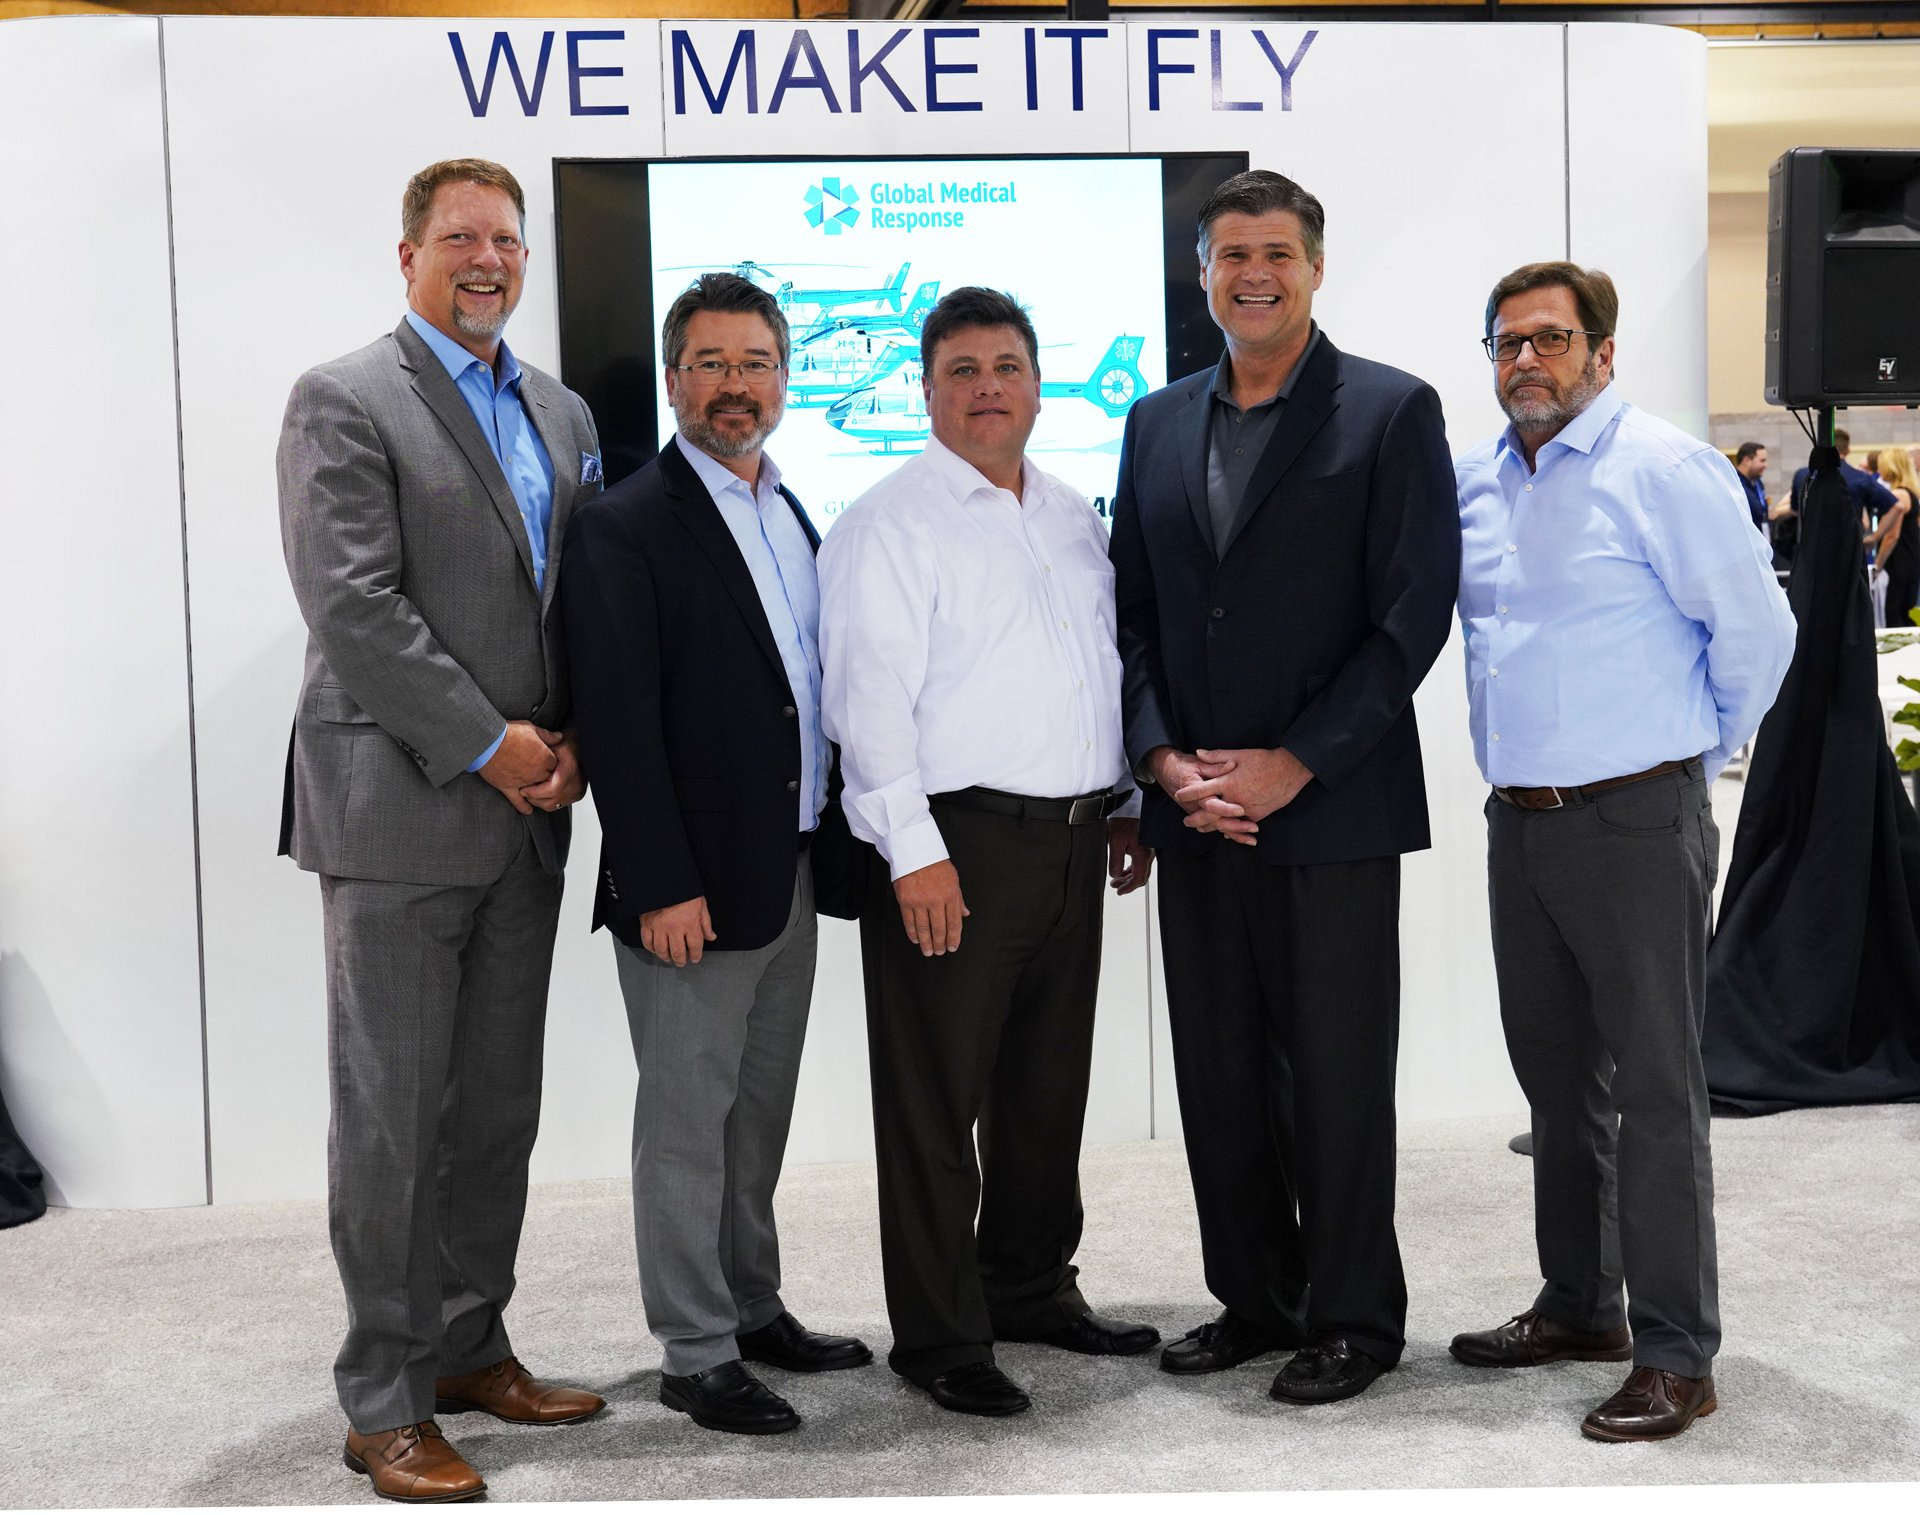 Airbus Helicopters Inc. President and Head of North America Region; Sean Russell, REACH President; Fred Buttrell, AMGH President and CEO; and John Byus, Airbus Helicopters Inc. Key Account Manager.